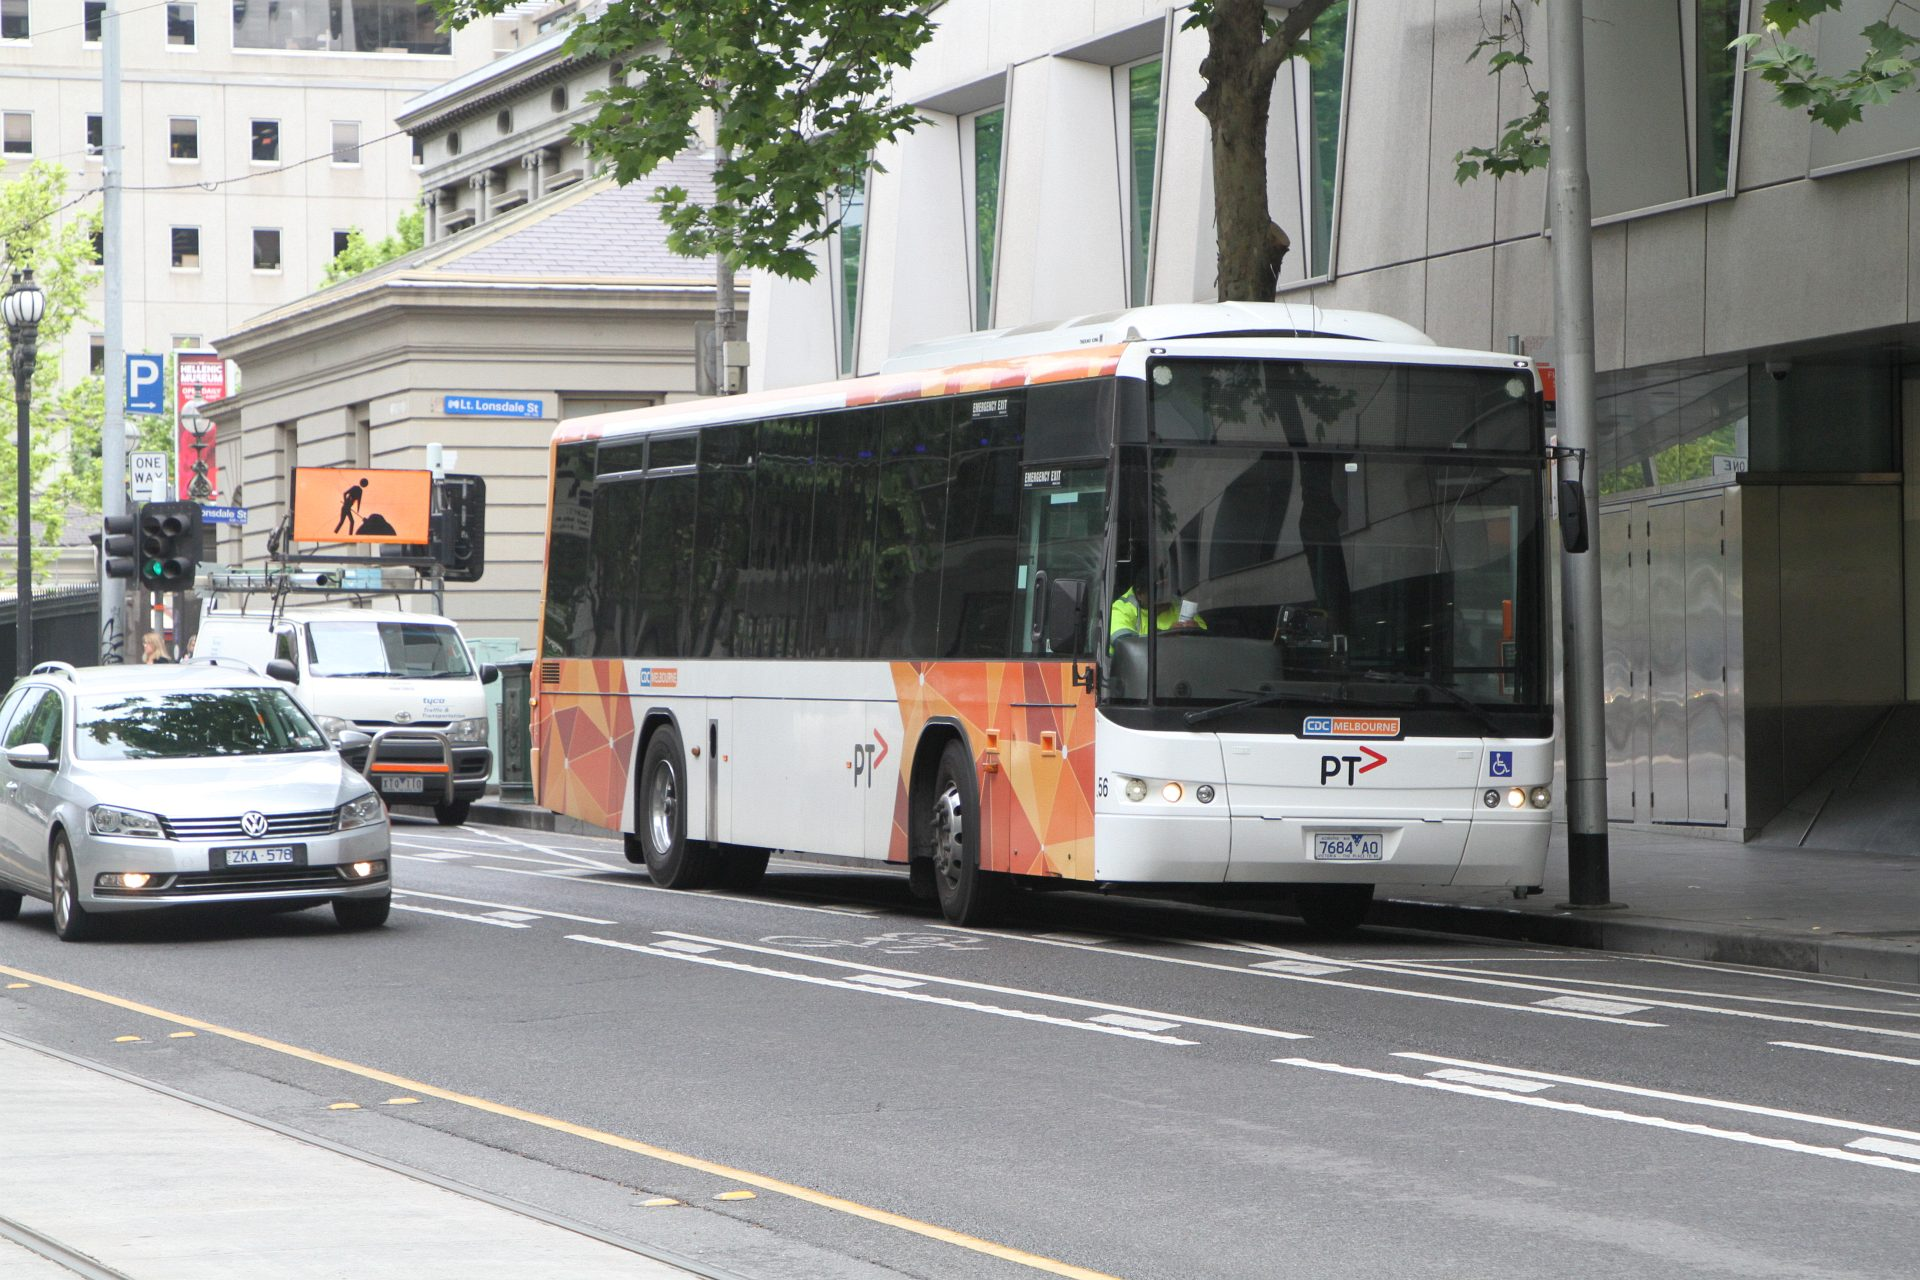 CDC Melbourne bus #56 7684AO on route 605 at Flagstaff